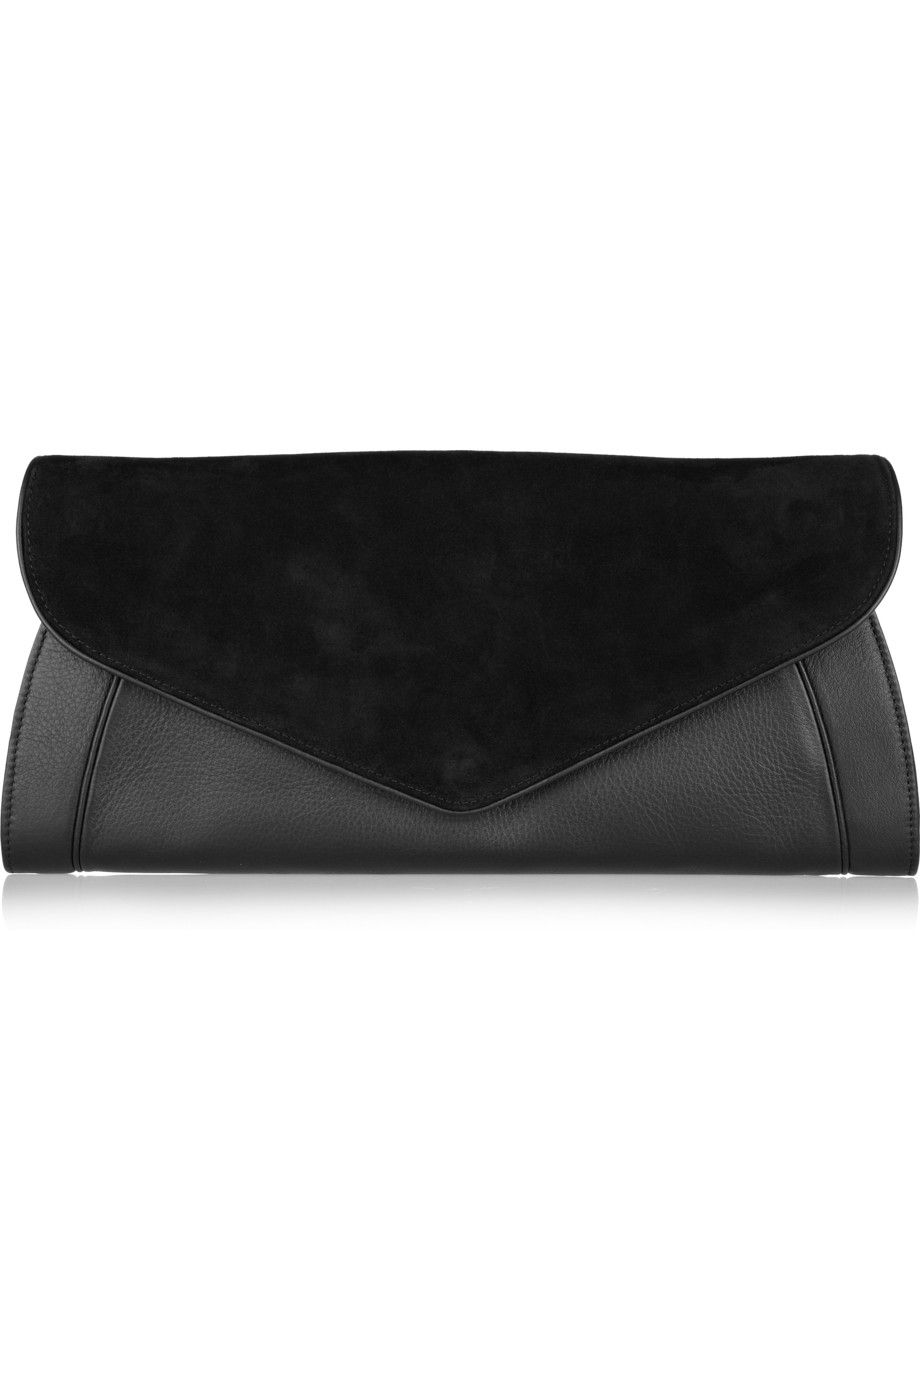 See by Chloé|Anna leather and suede clutch|NET-A-PORTER.COM